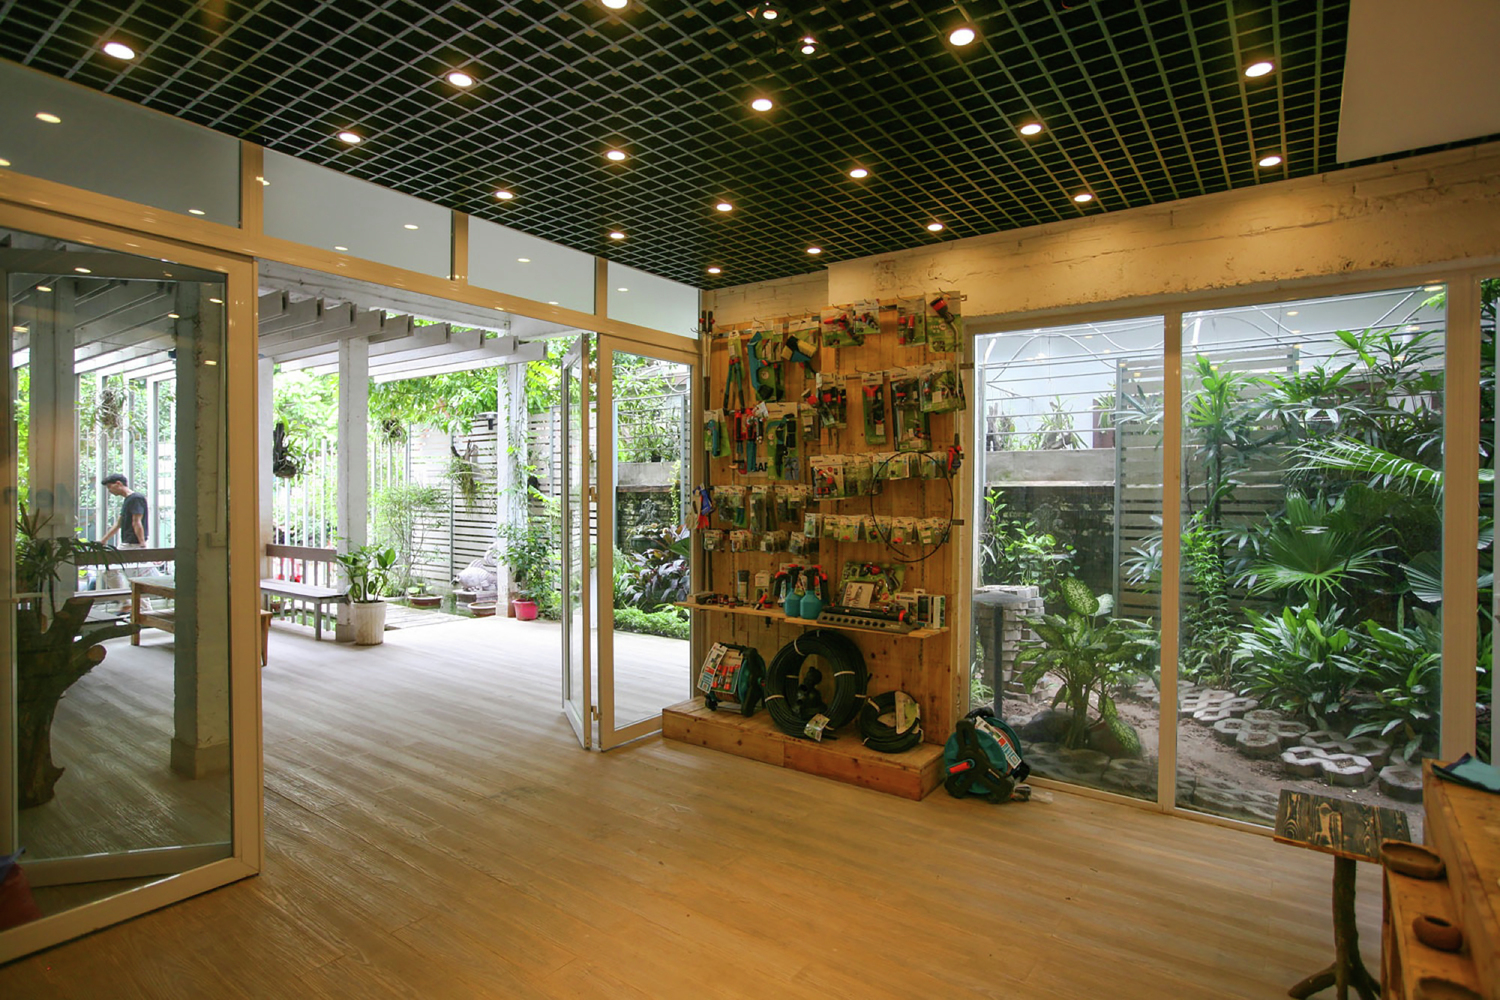 Green office Indoor Growing Green Office Vu Xuan Son Archdaily Gallery Of Growing Green Office Studio 102